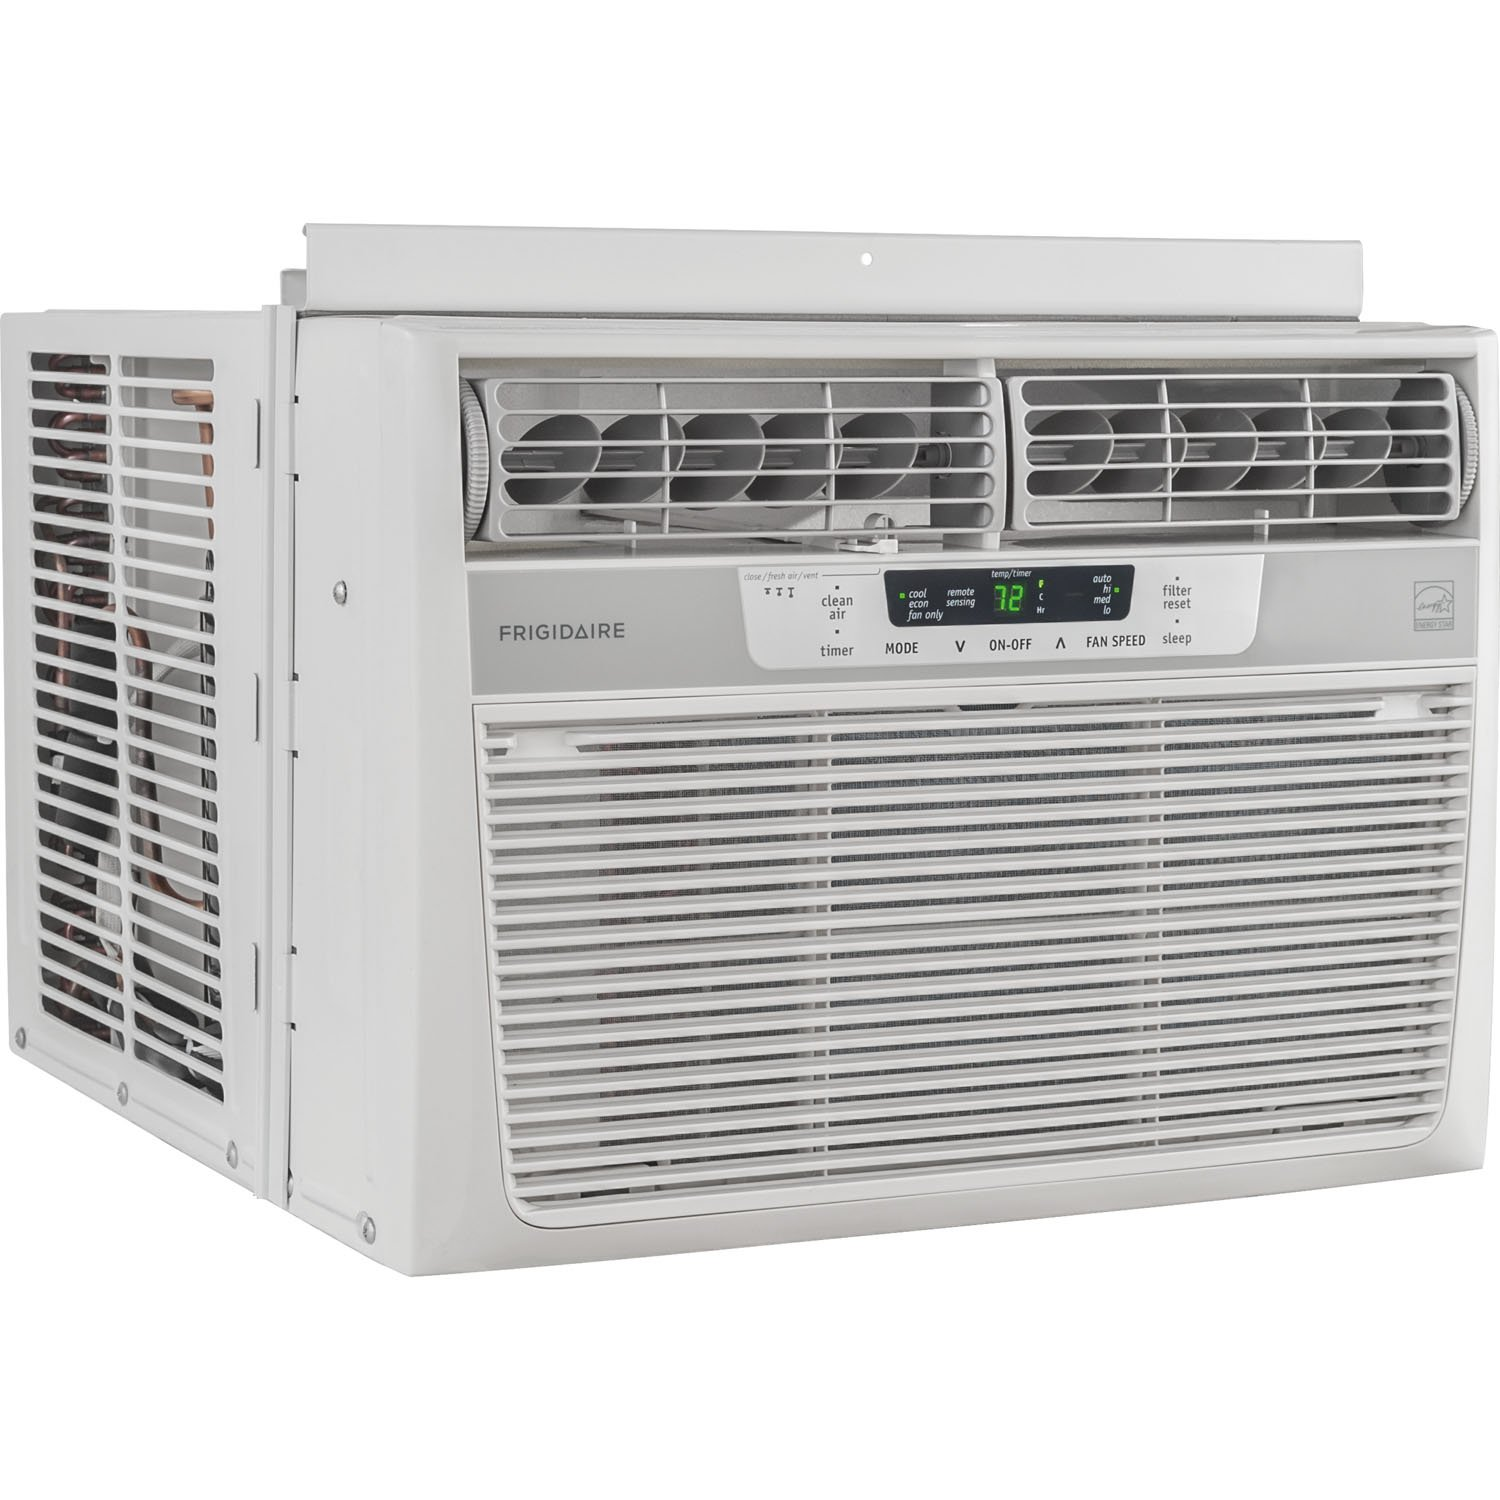 Amazon.com: Frigidaire 10,000 BTU 115V Window-Mounted Compact Air  Conditioner with Temperature Sensing Remote Control: Home & Kitchen